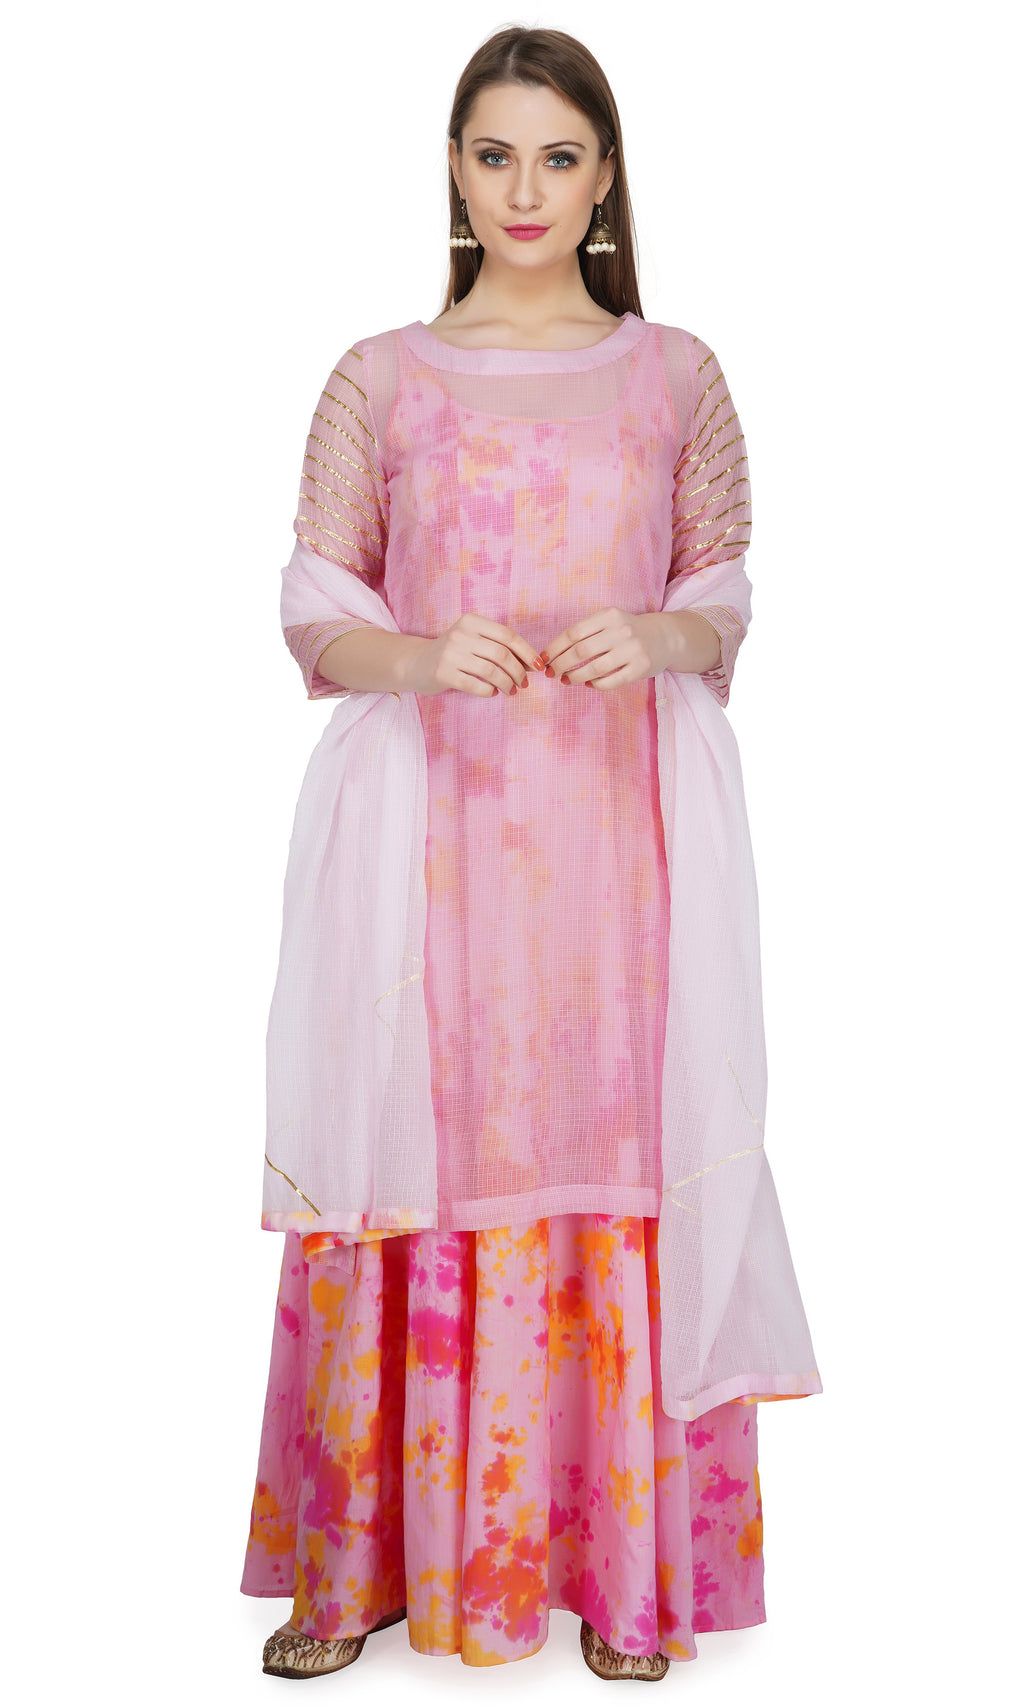 Pink Kota Kurta with Crinkle Marble Dyed Dress and Dupatta- Set of 3